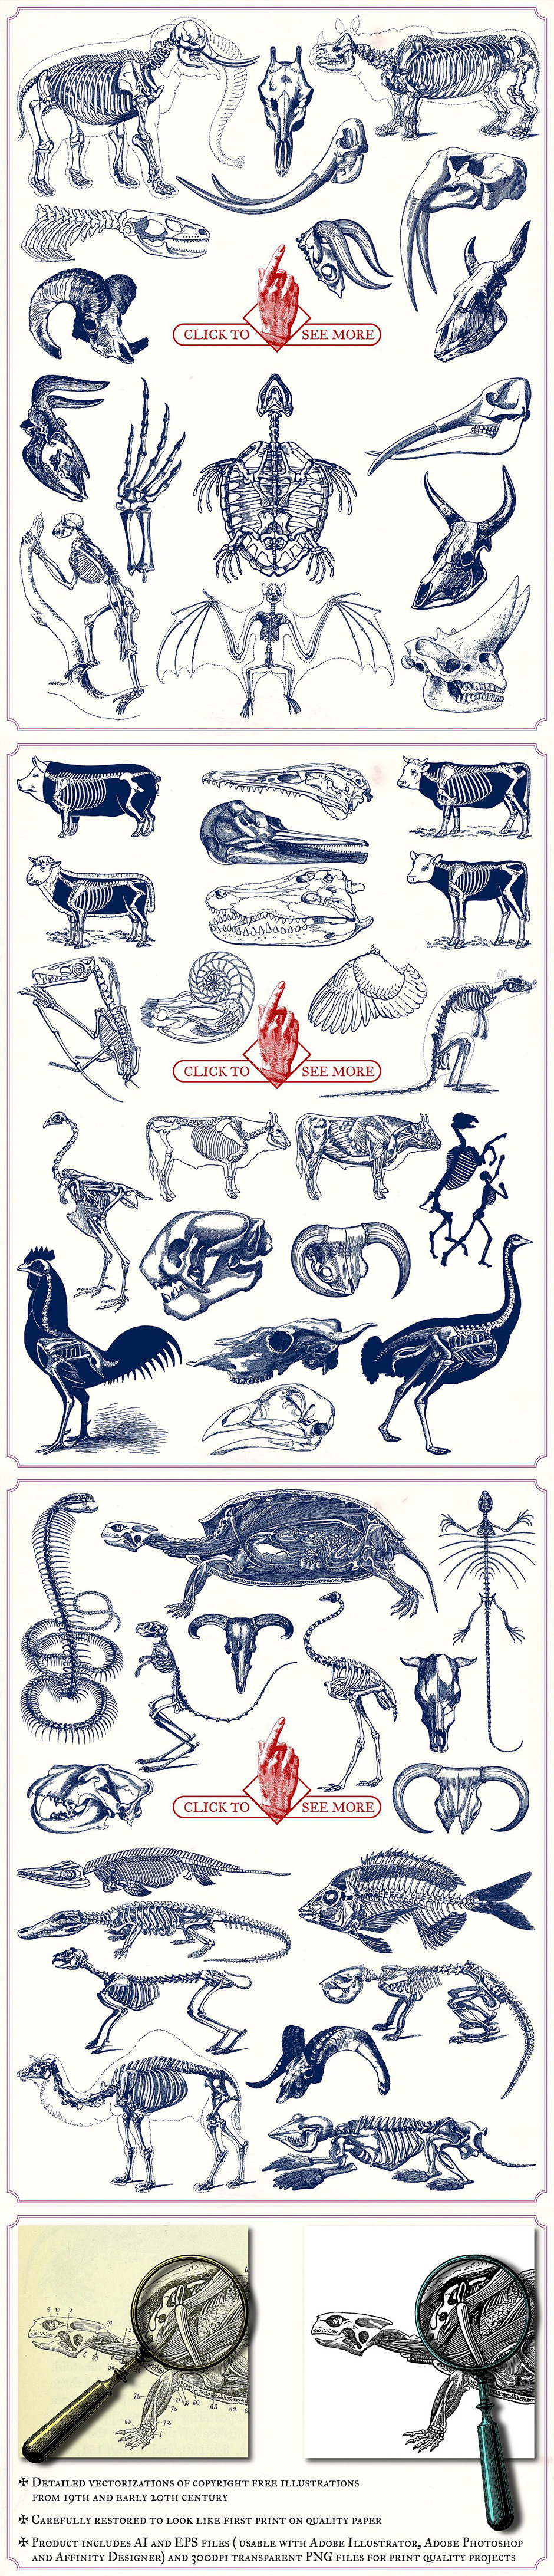 Vintage Animal Anatomy Vectors